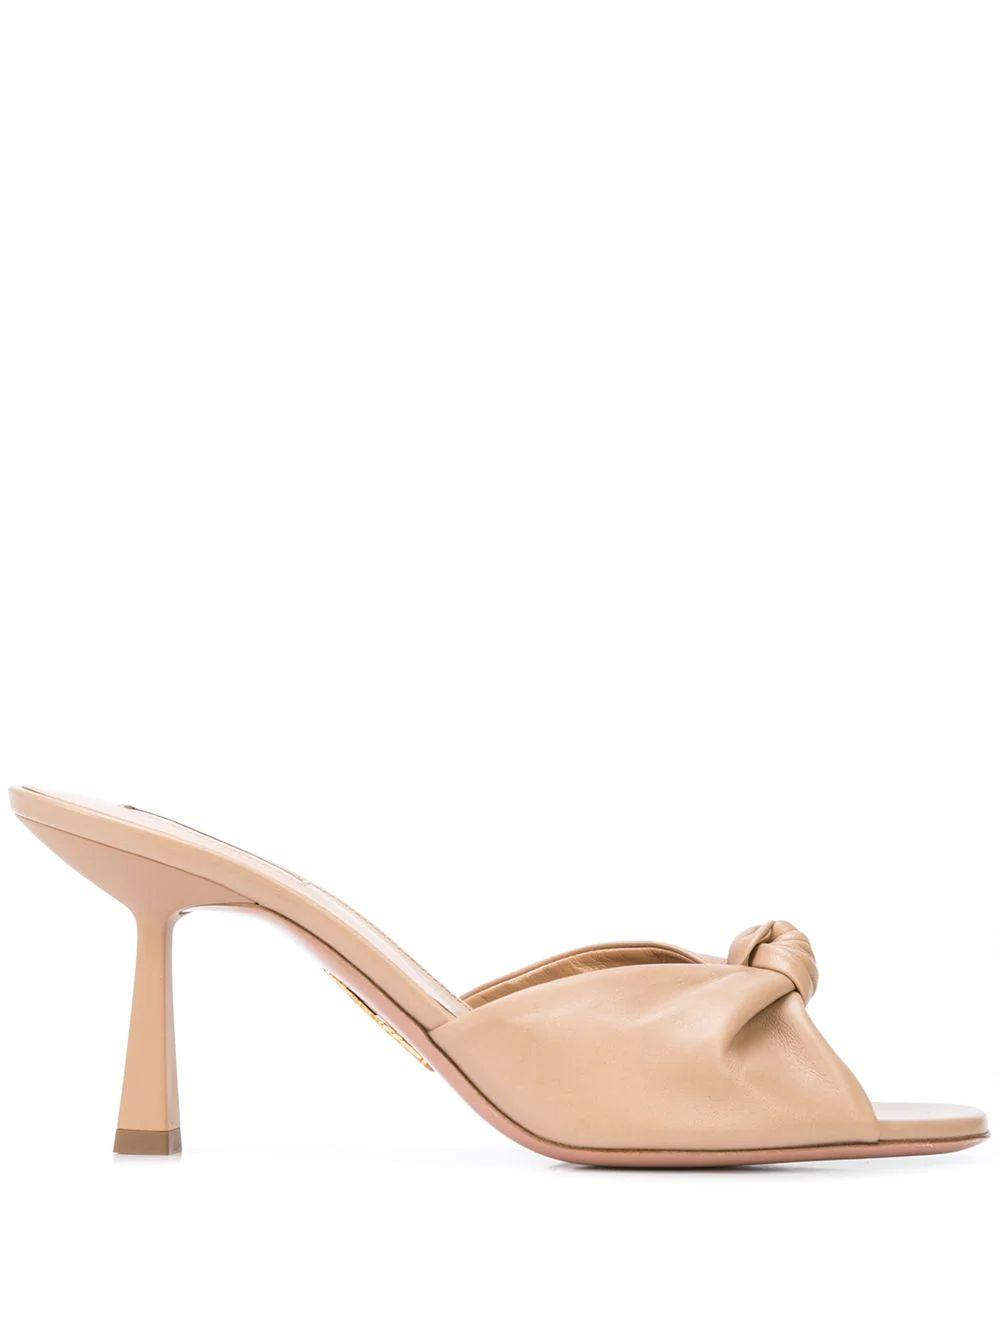 Pasha Leather 75mm Open Toe Mule Item # PSHMIDM0-NAP